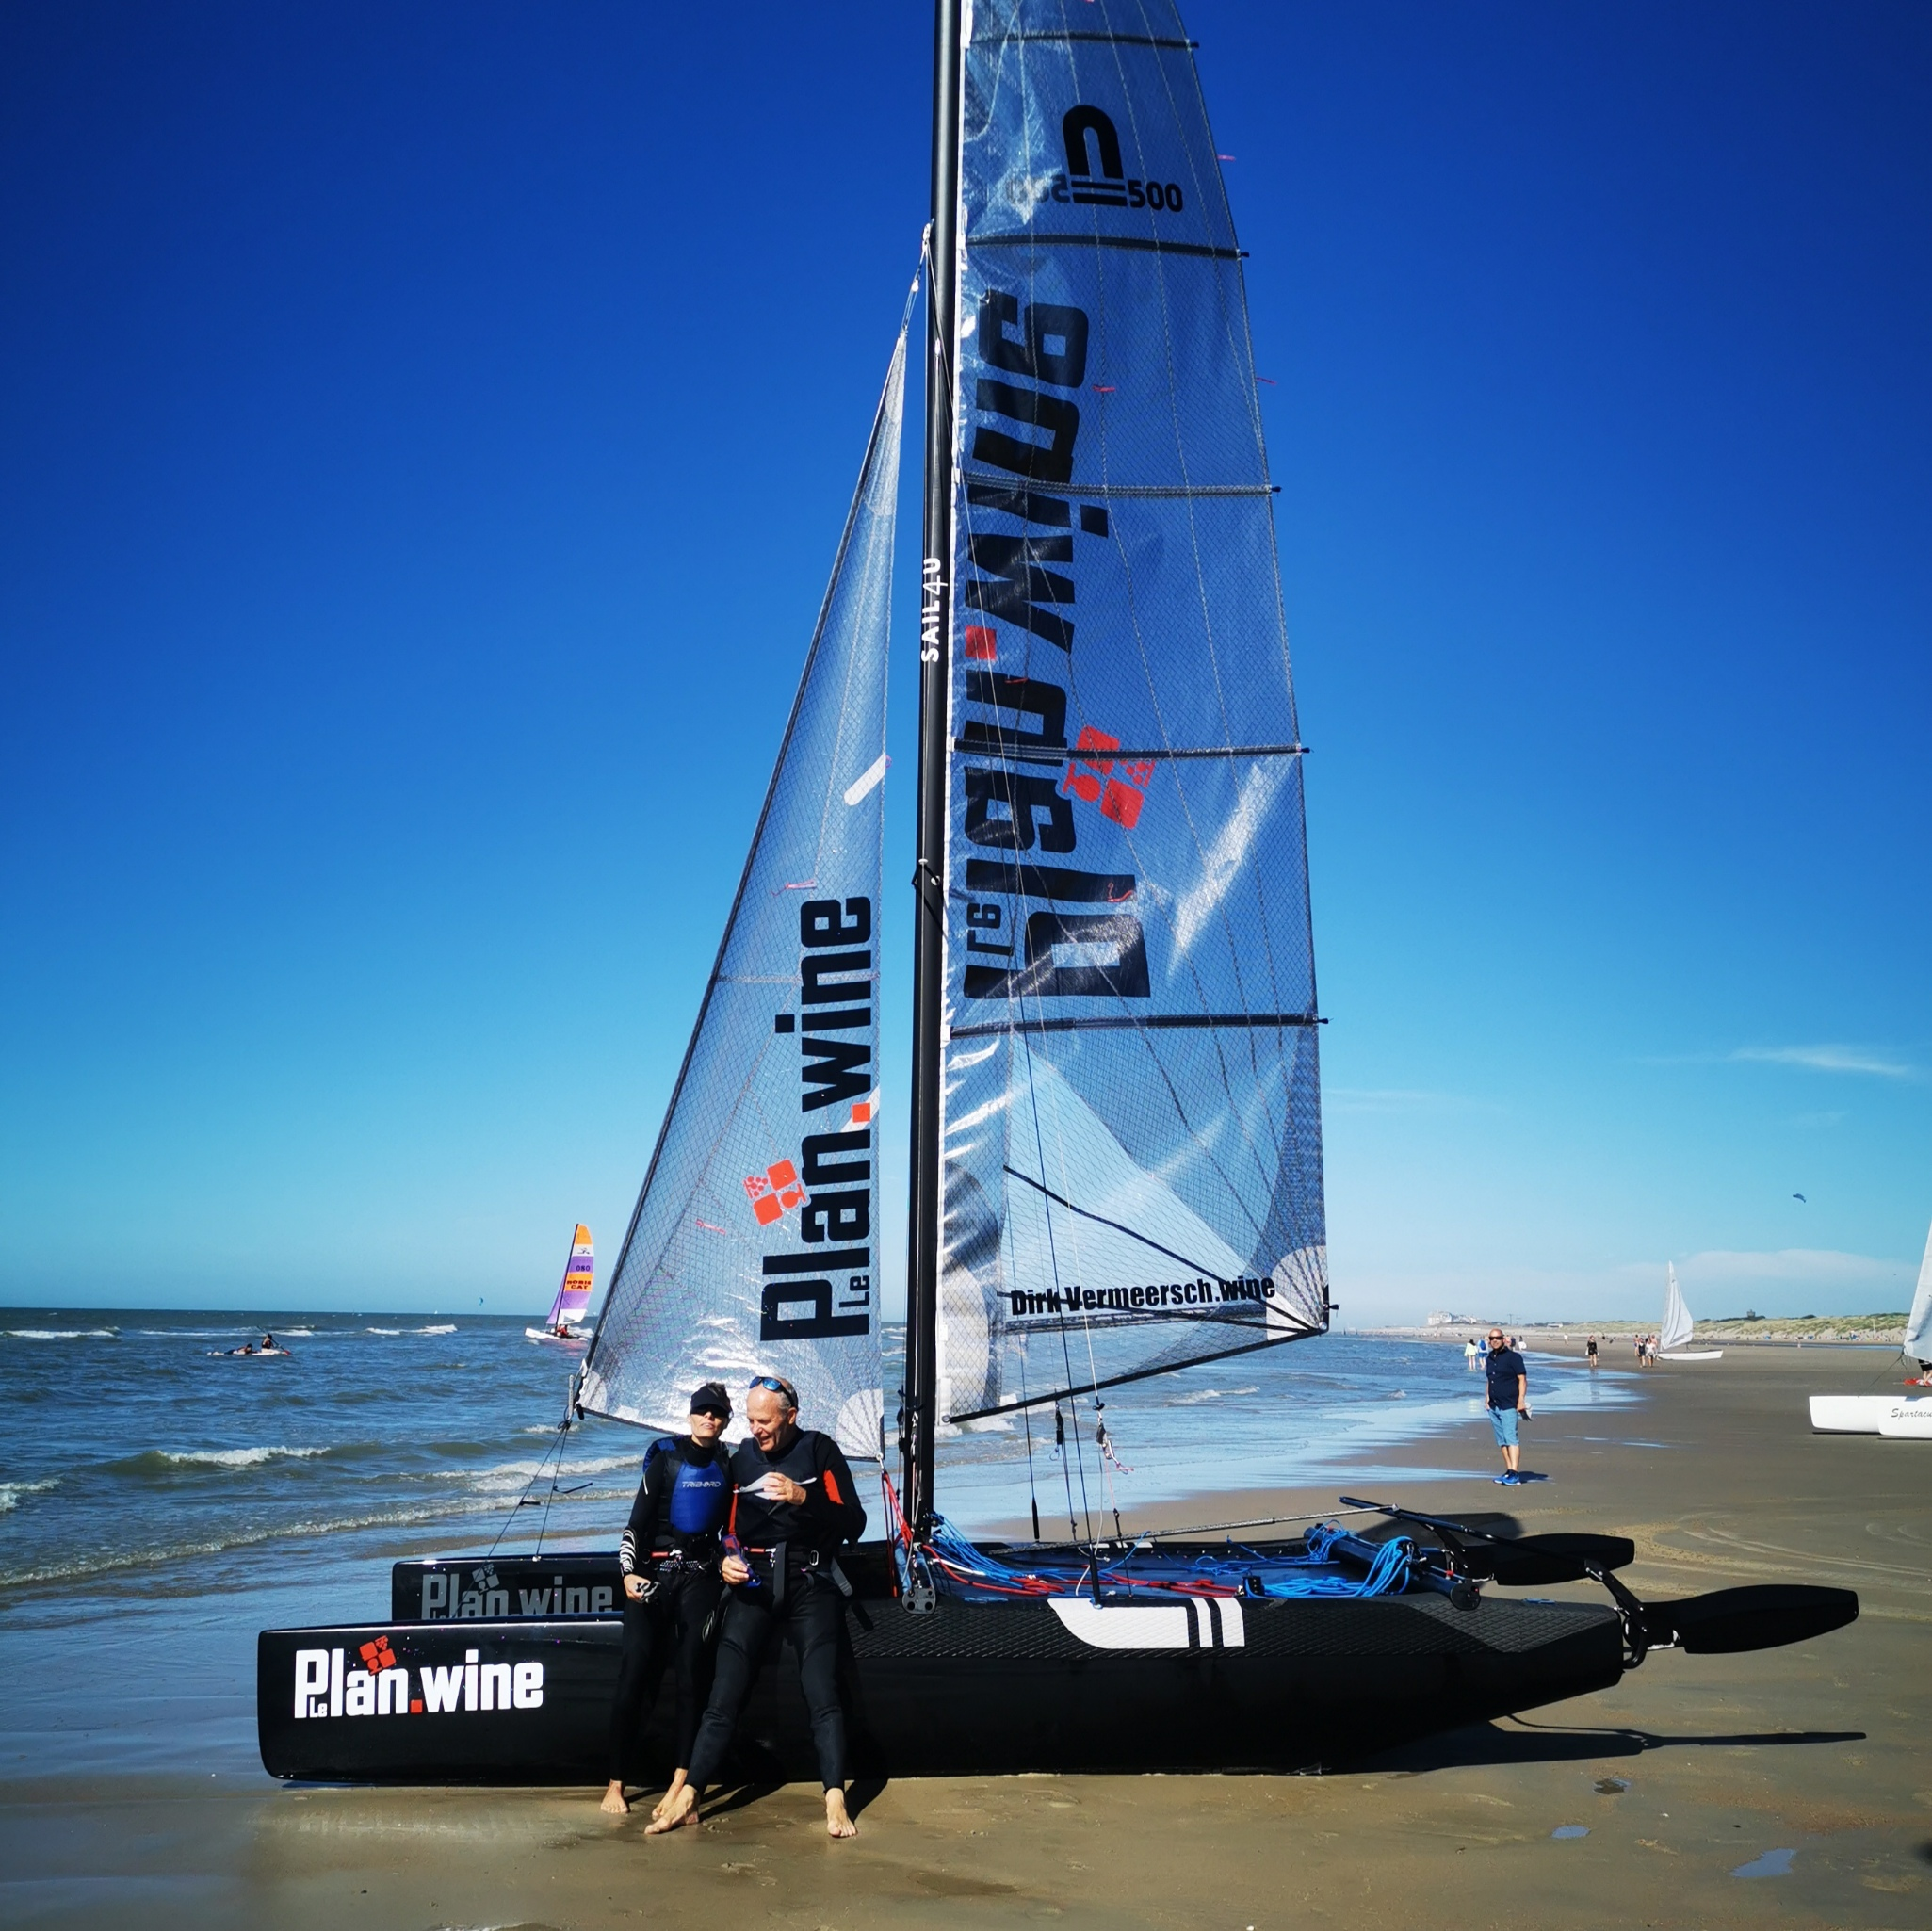 Sailling boat sponsored by LePlan-Vermeersch at the beach